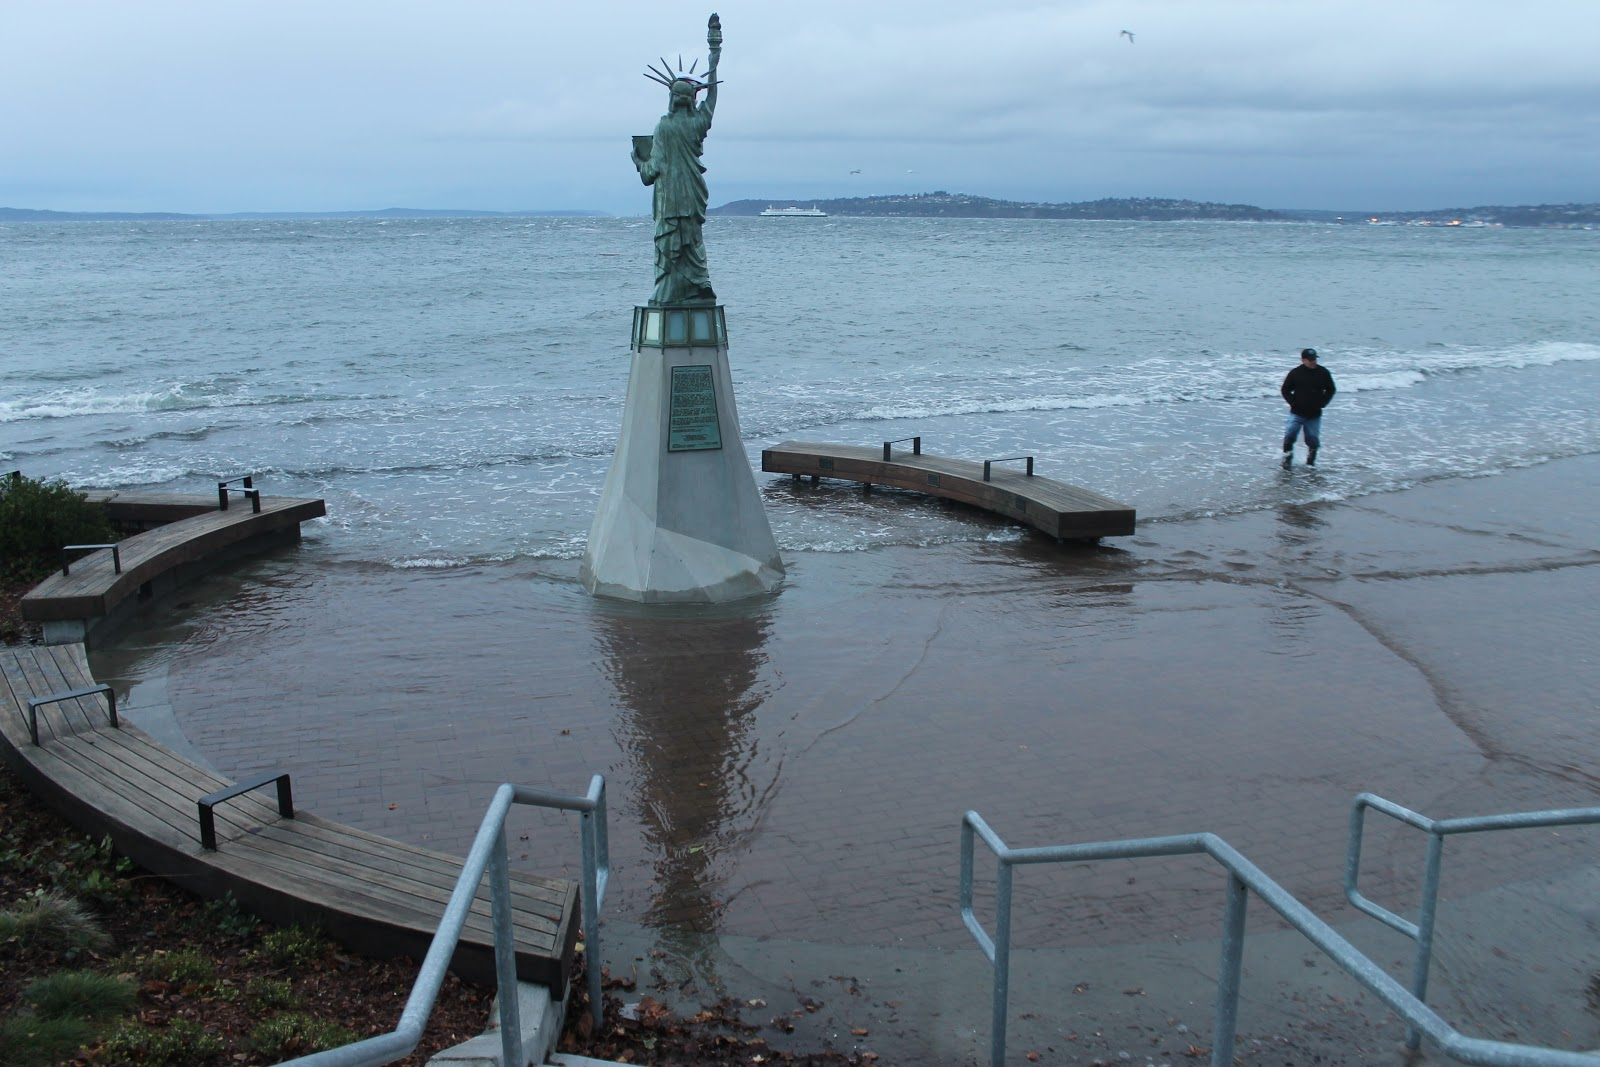 Cliff mass weather and climate blog record water levels in seattle cliff mass weather and climate blog record water levels in seattle why did it occur and is global warming important nvjuhfo Choice Image